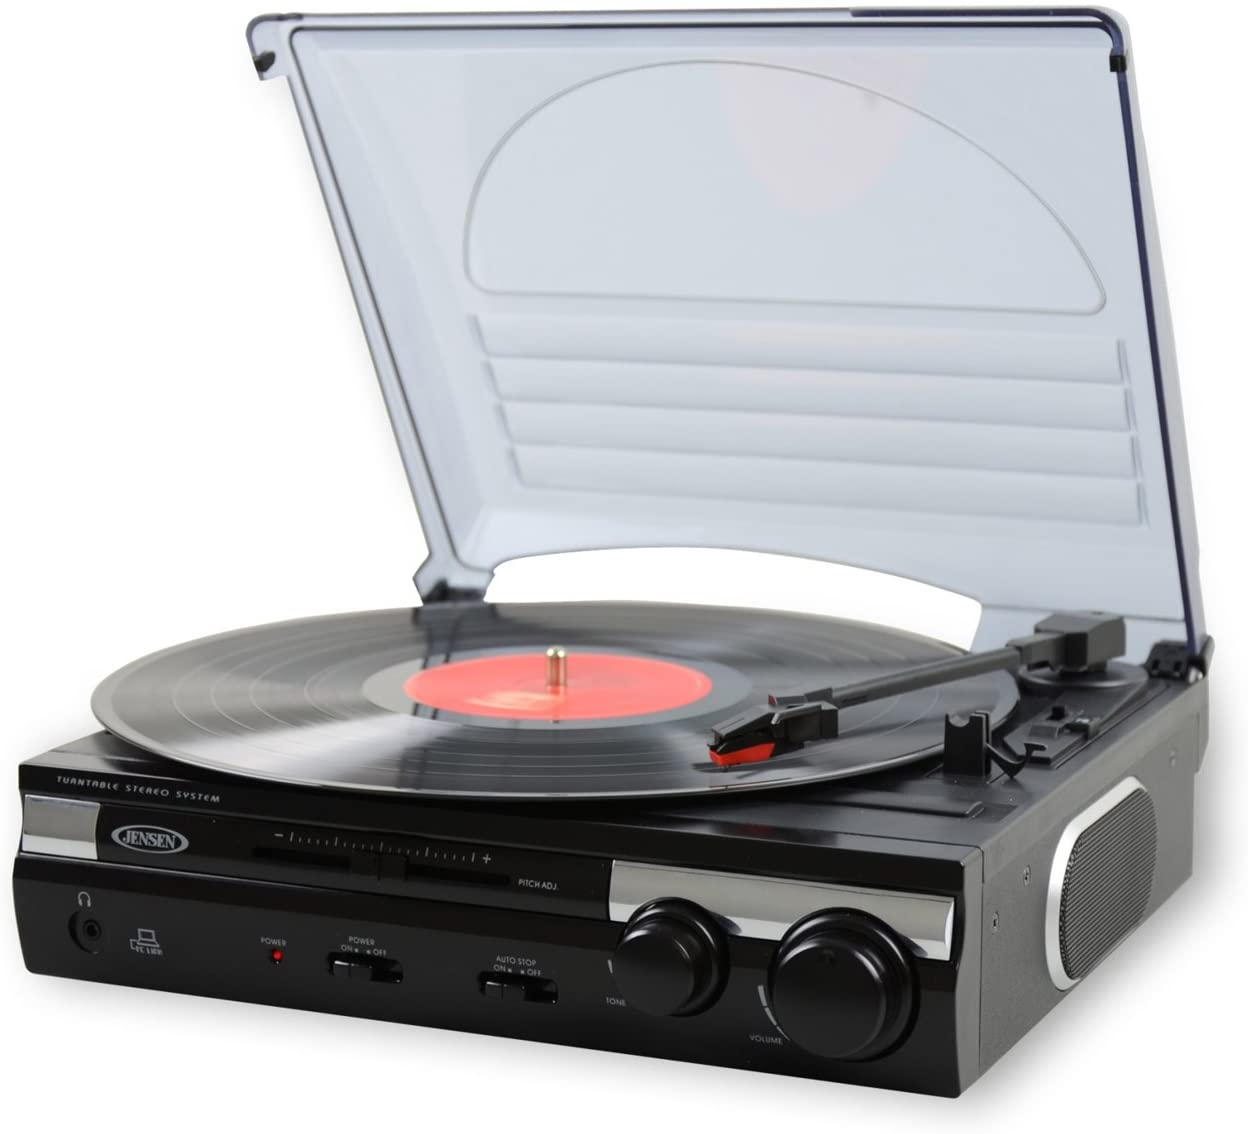 Small black record player with open lid